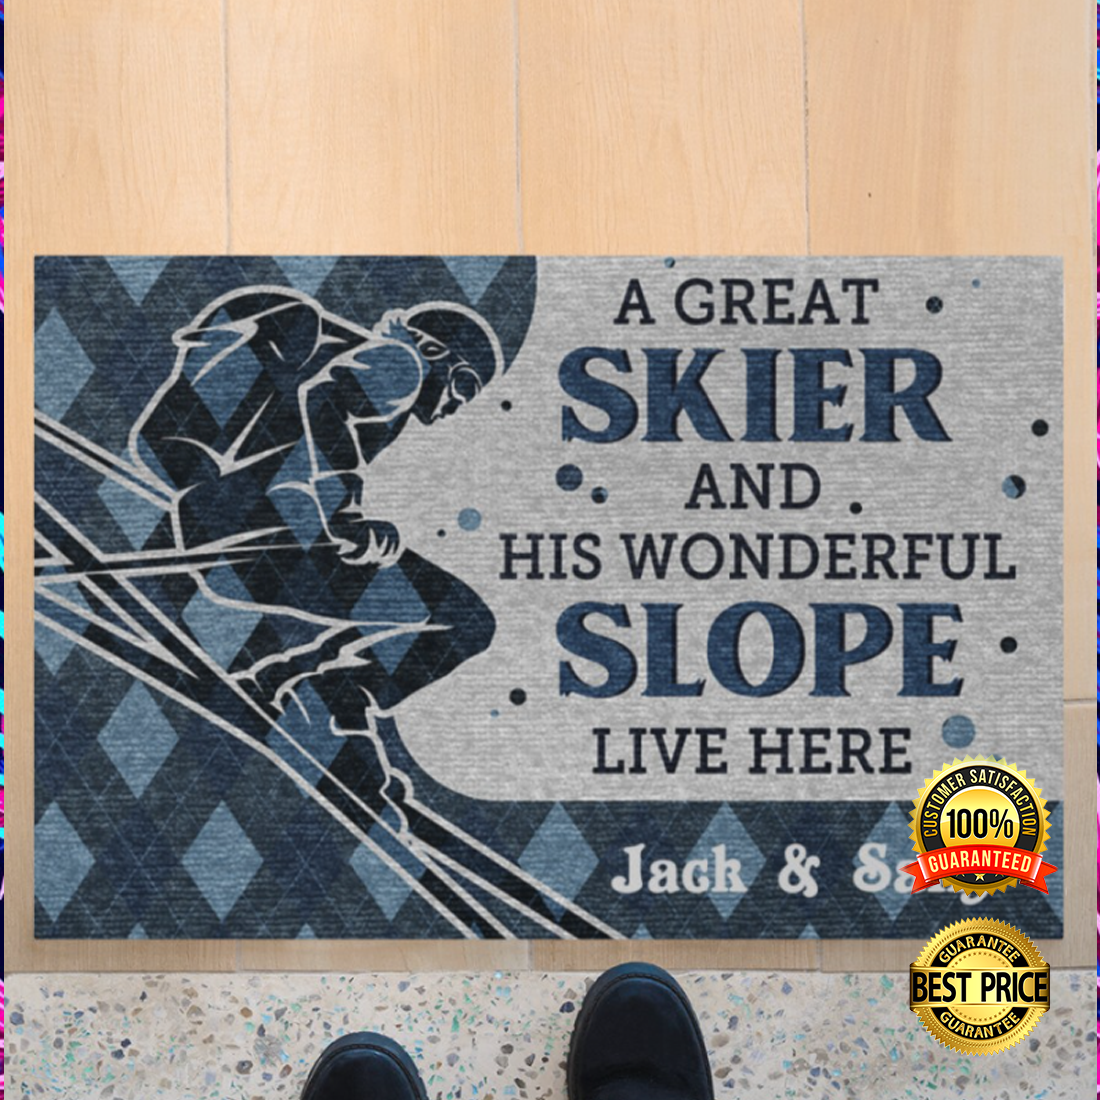 PERSONALIZED A GREAT SKIER AND HIS WONDERFUL SLOPE LIVE HERE DOORMAT 5